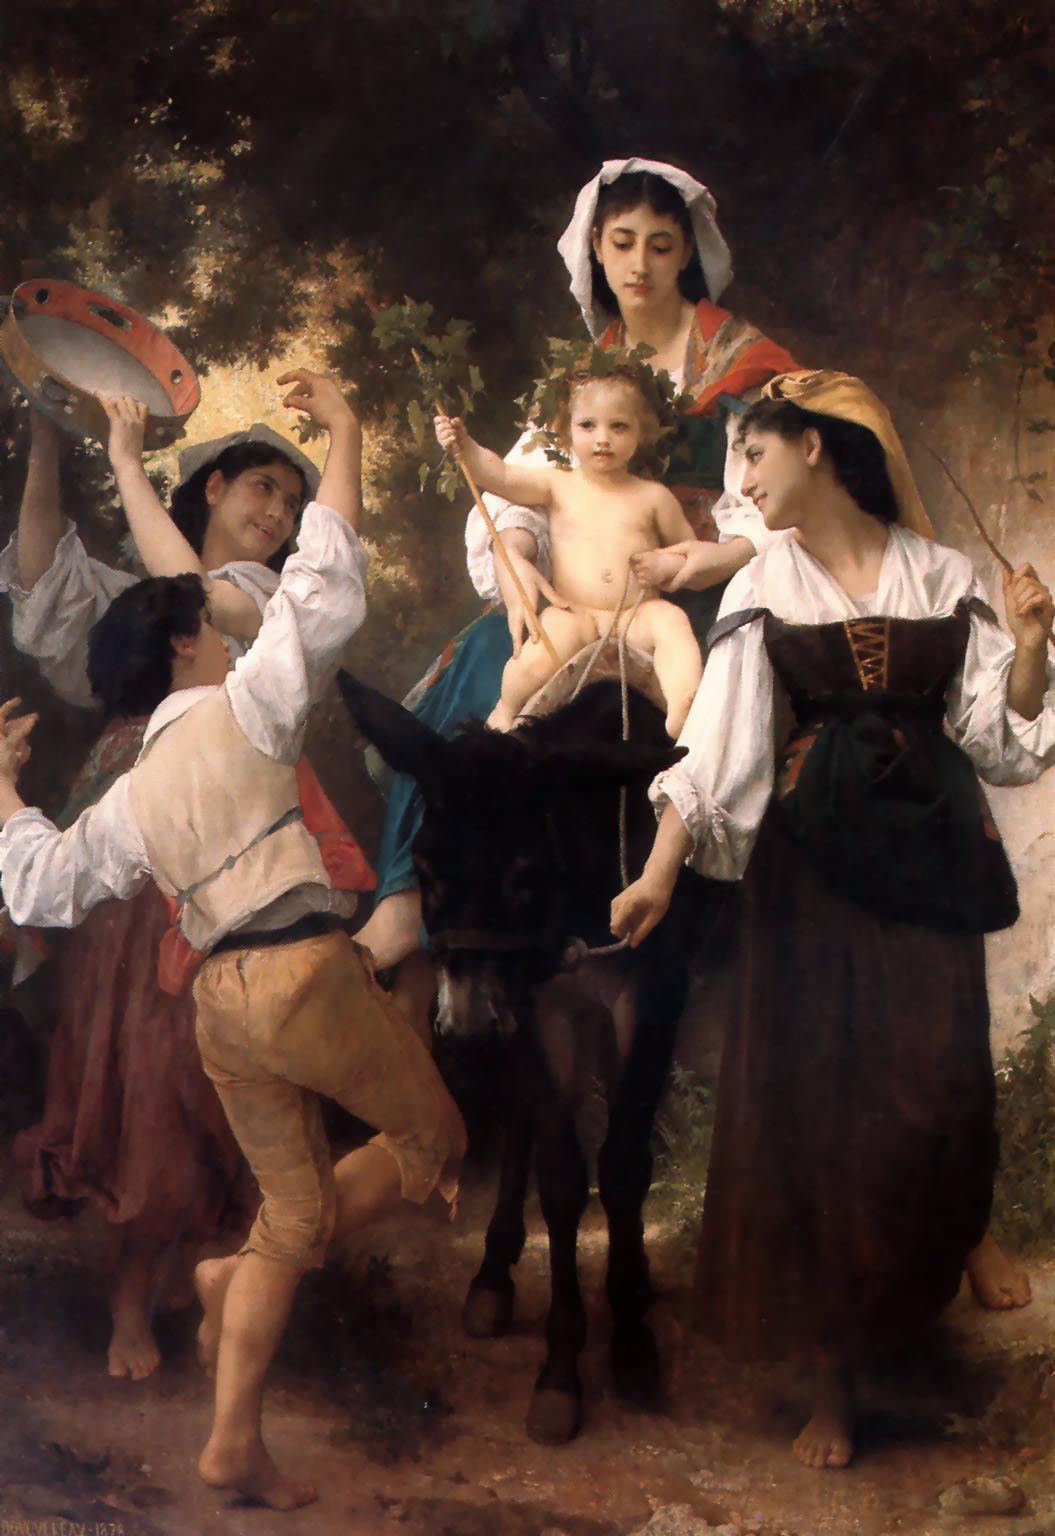 William Bouguereau (1825-1905)  Promenade а вne [Donkey Ride]  Oil on canvas, 1878  95 x 42 1/8 inches (241.3 x 107.2 cm)  Cummer Museum of Art and Gardens, Jacksonville